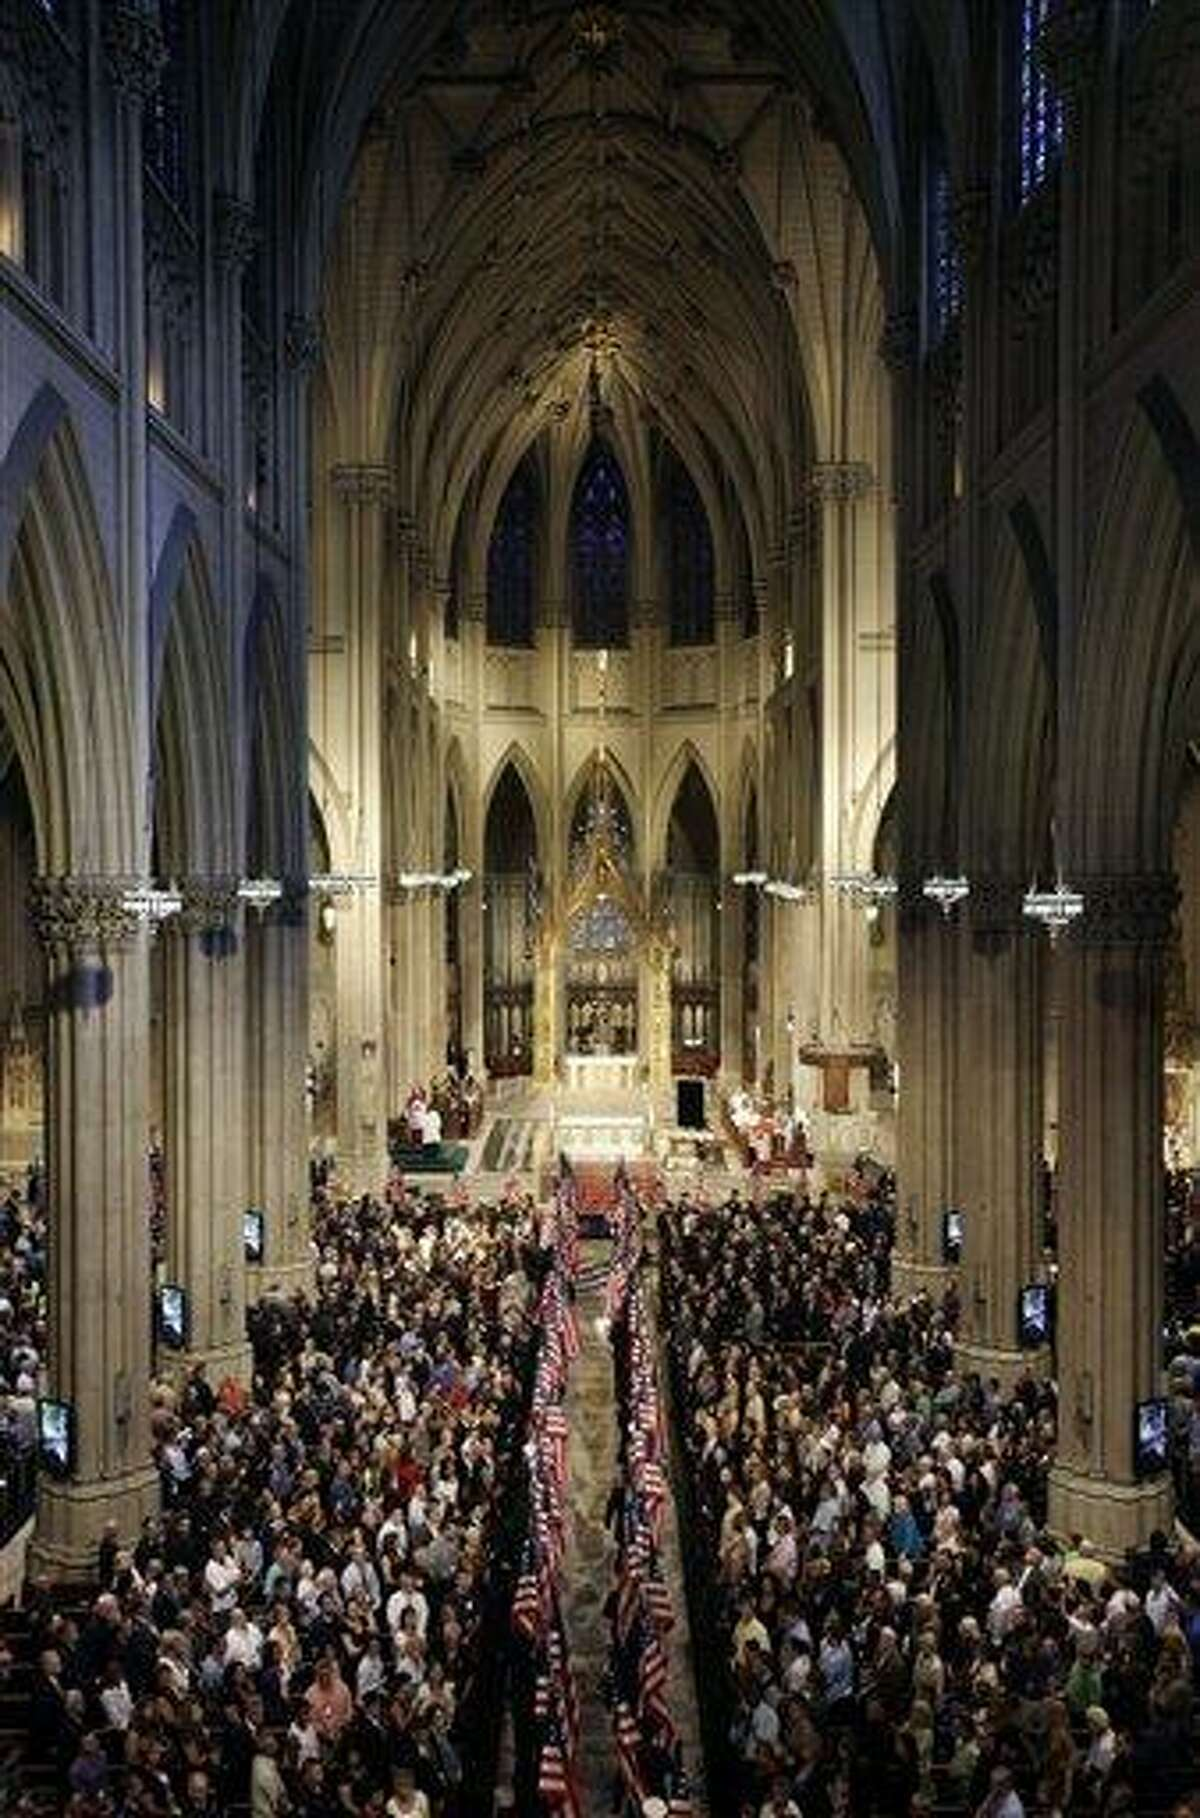 In this 2011 photo, flags are carried into St. Patrick's Cathedral during a ceremony to honor New York firefighters who were killed in the attacks on the World Trade Center in New York. St. Patrick's Cathedral in New York City is embarking on a multimillion-dollar renovation. The $175 million facelift is slated to begin at the end of April and last at least two years. Associated Press